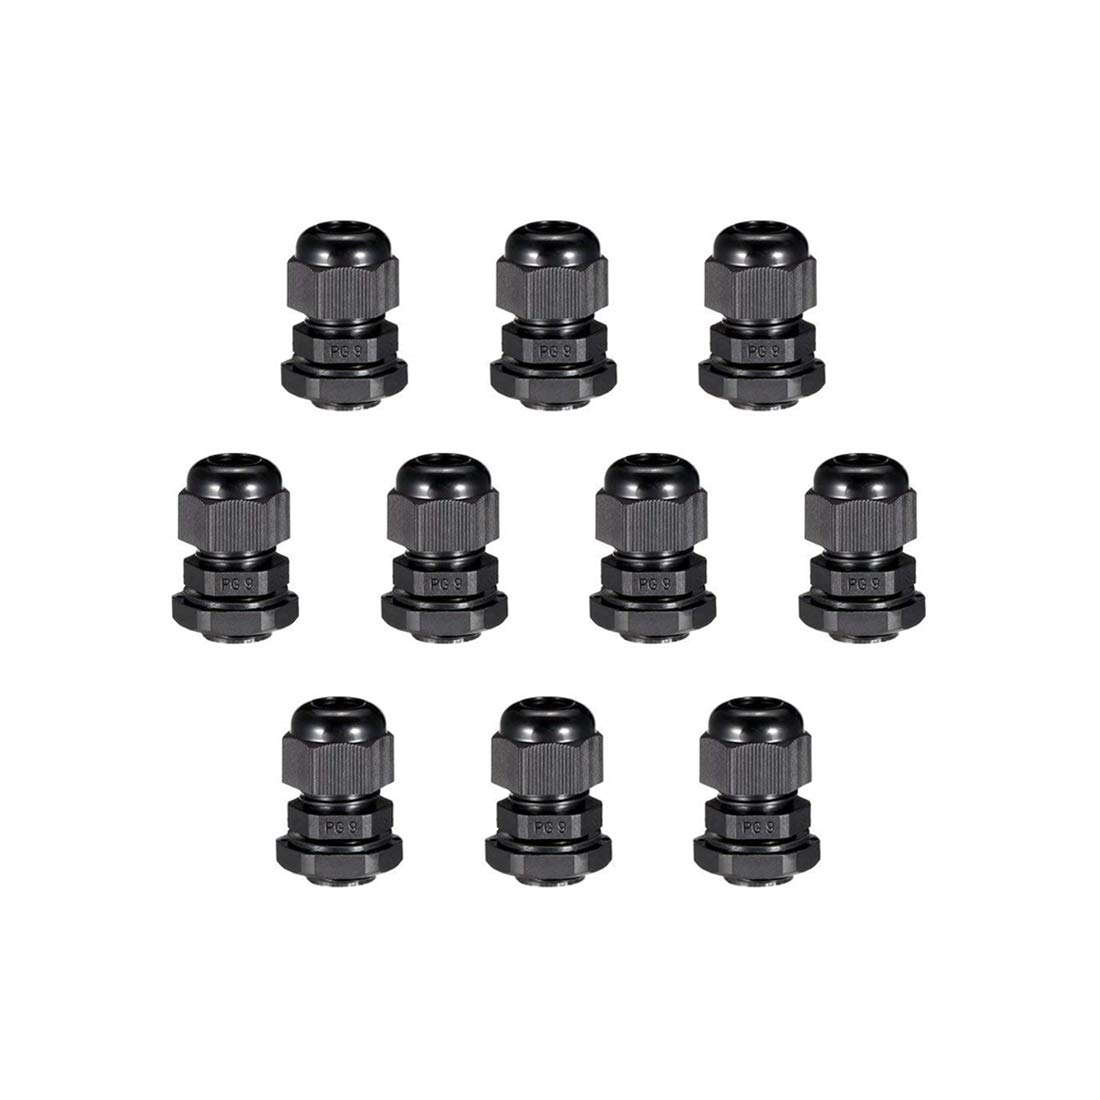 10Pcs PG9 Cable Gland Waterproof Plastic Joint Adjustable Locknut Black for 4mm 8mm Dia Cable Wire